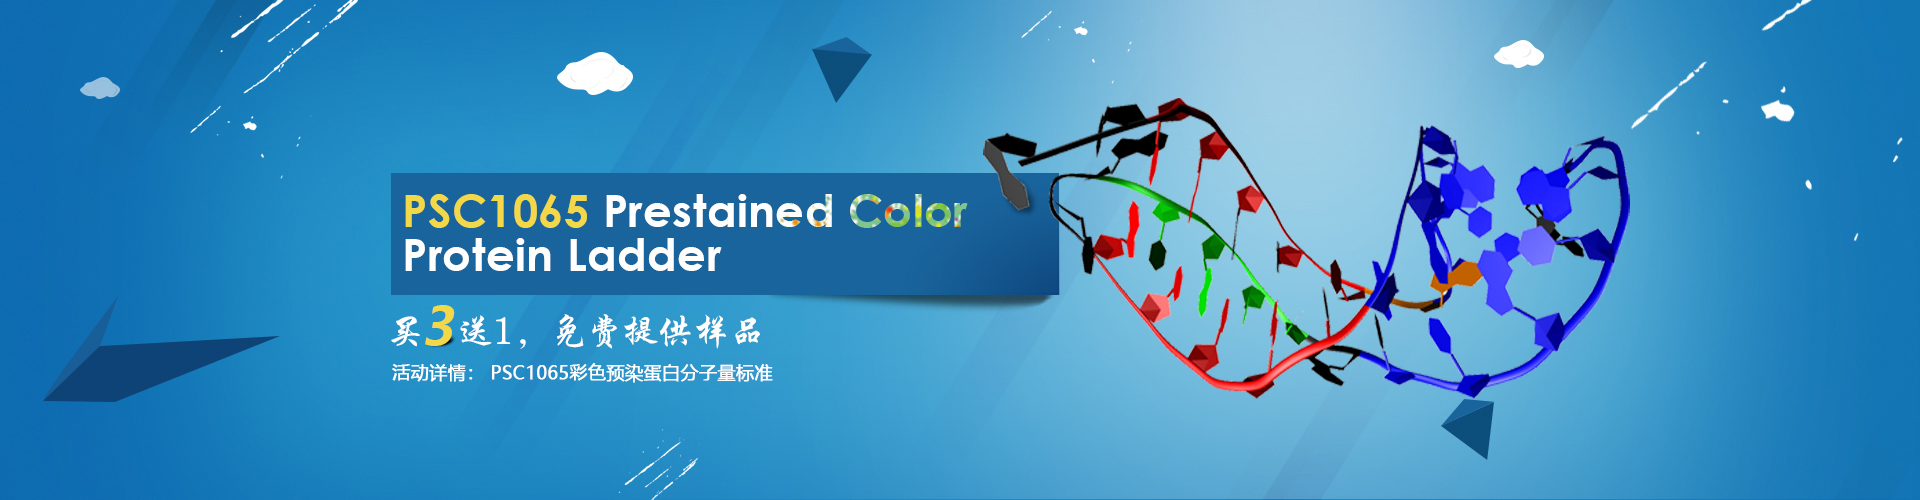 PSC1065 Prestained Color Protein Ladder